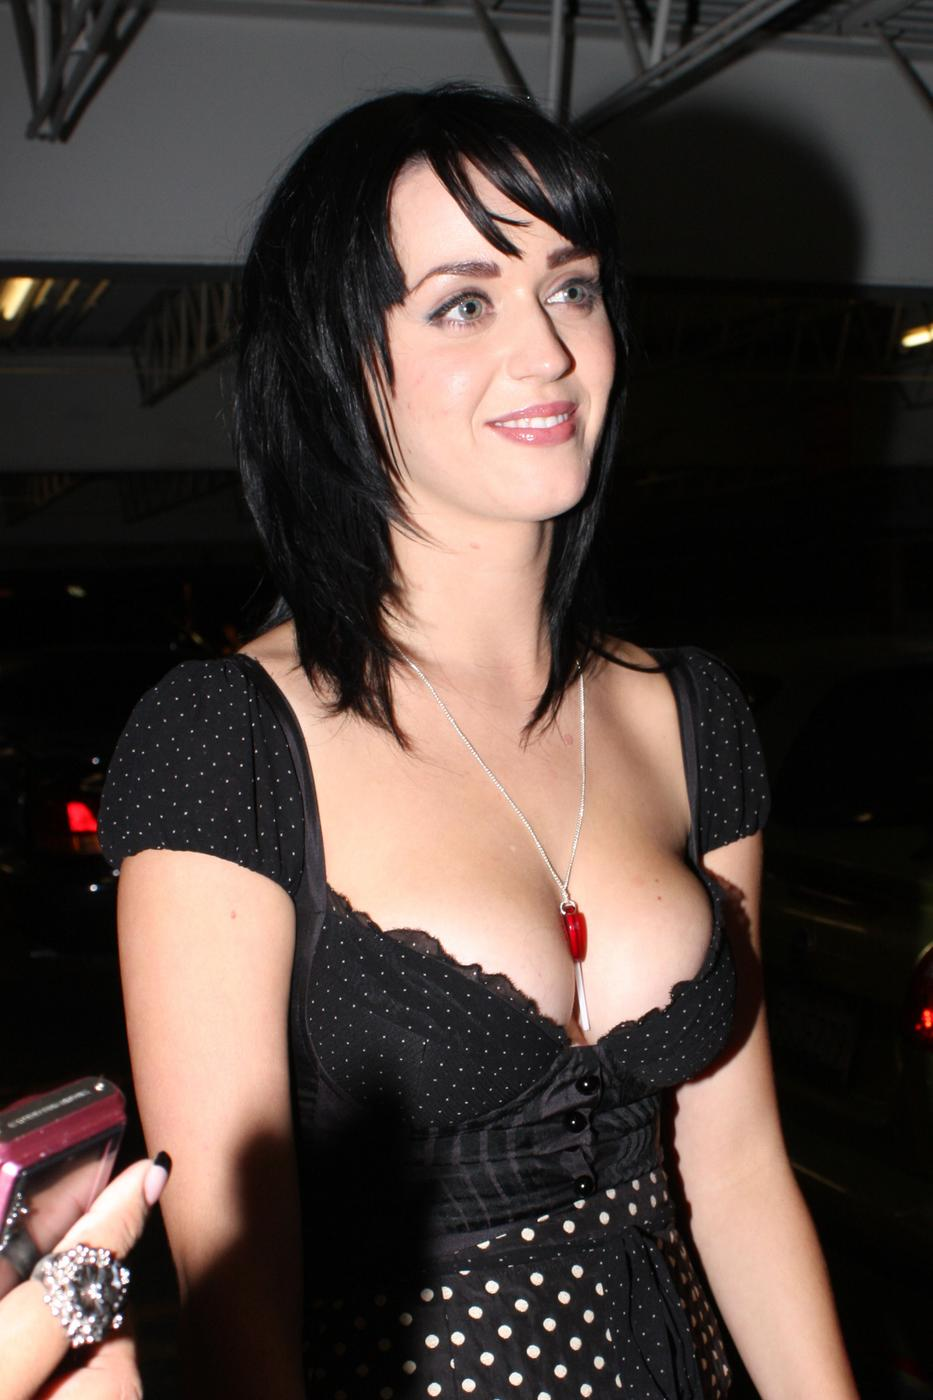 Pictures For Wallpaper Iphone Katy Perry Katy Perry Hot Pictures